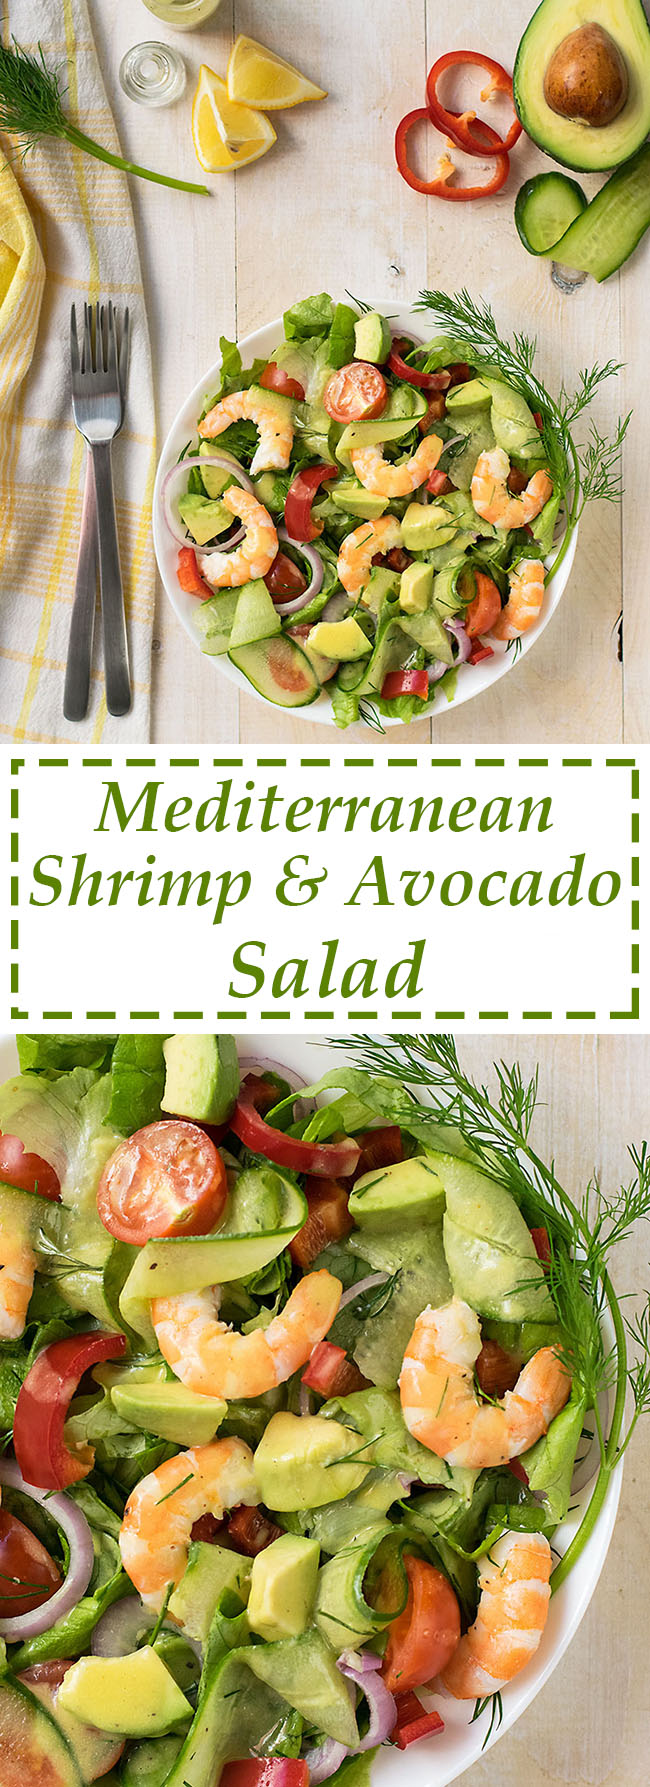 Mediterranean shrimp and avocado salad 5